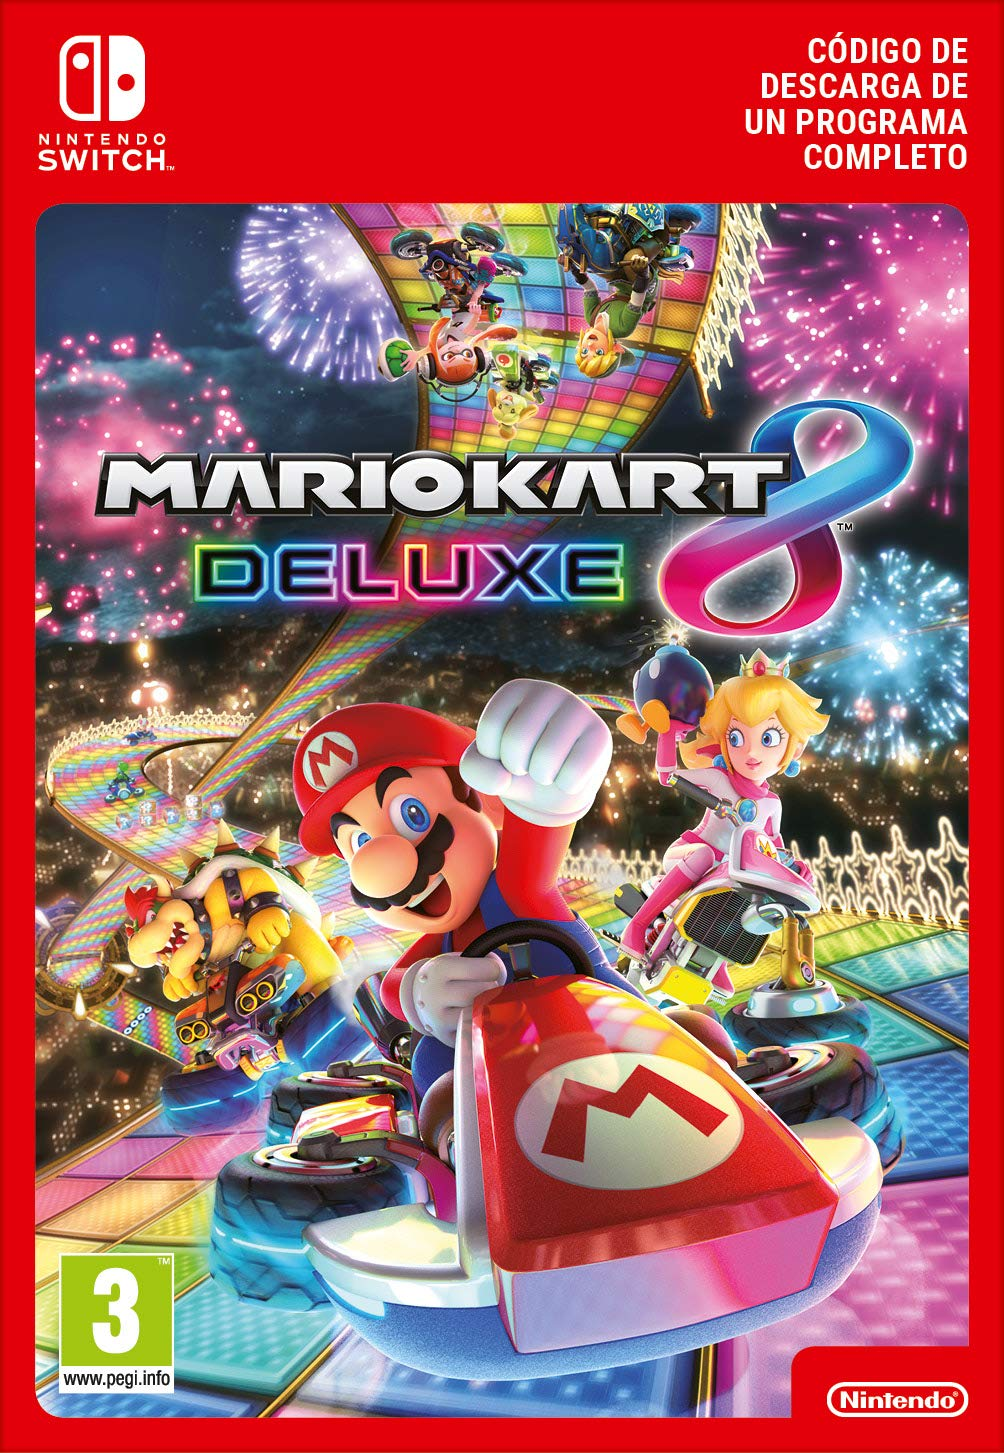 Mario Kart 8 Deluxe | Nintendo Switch - Código de descarga: Amazon ...